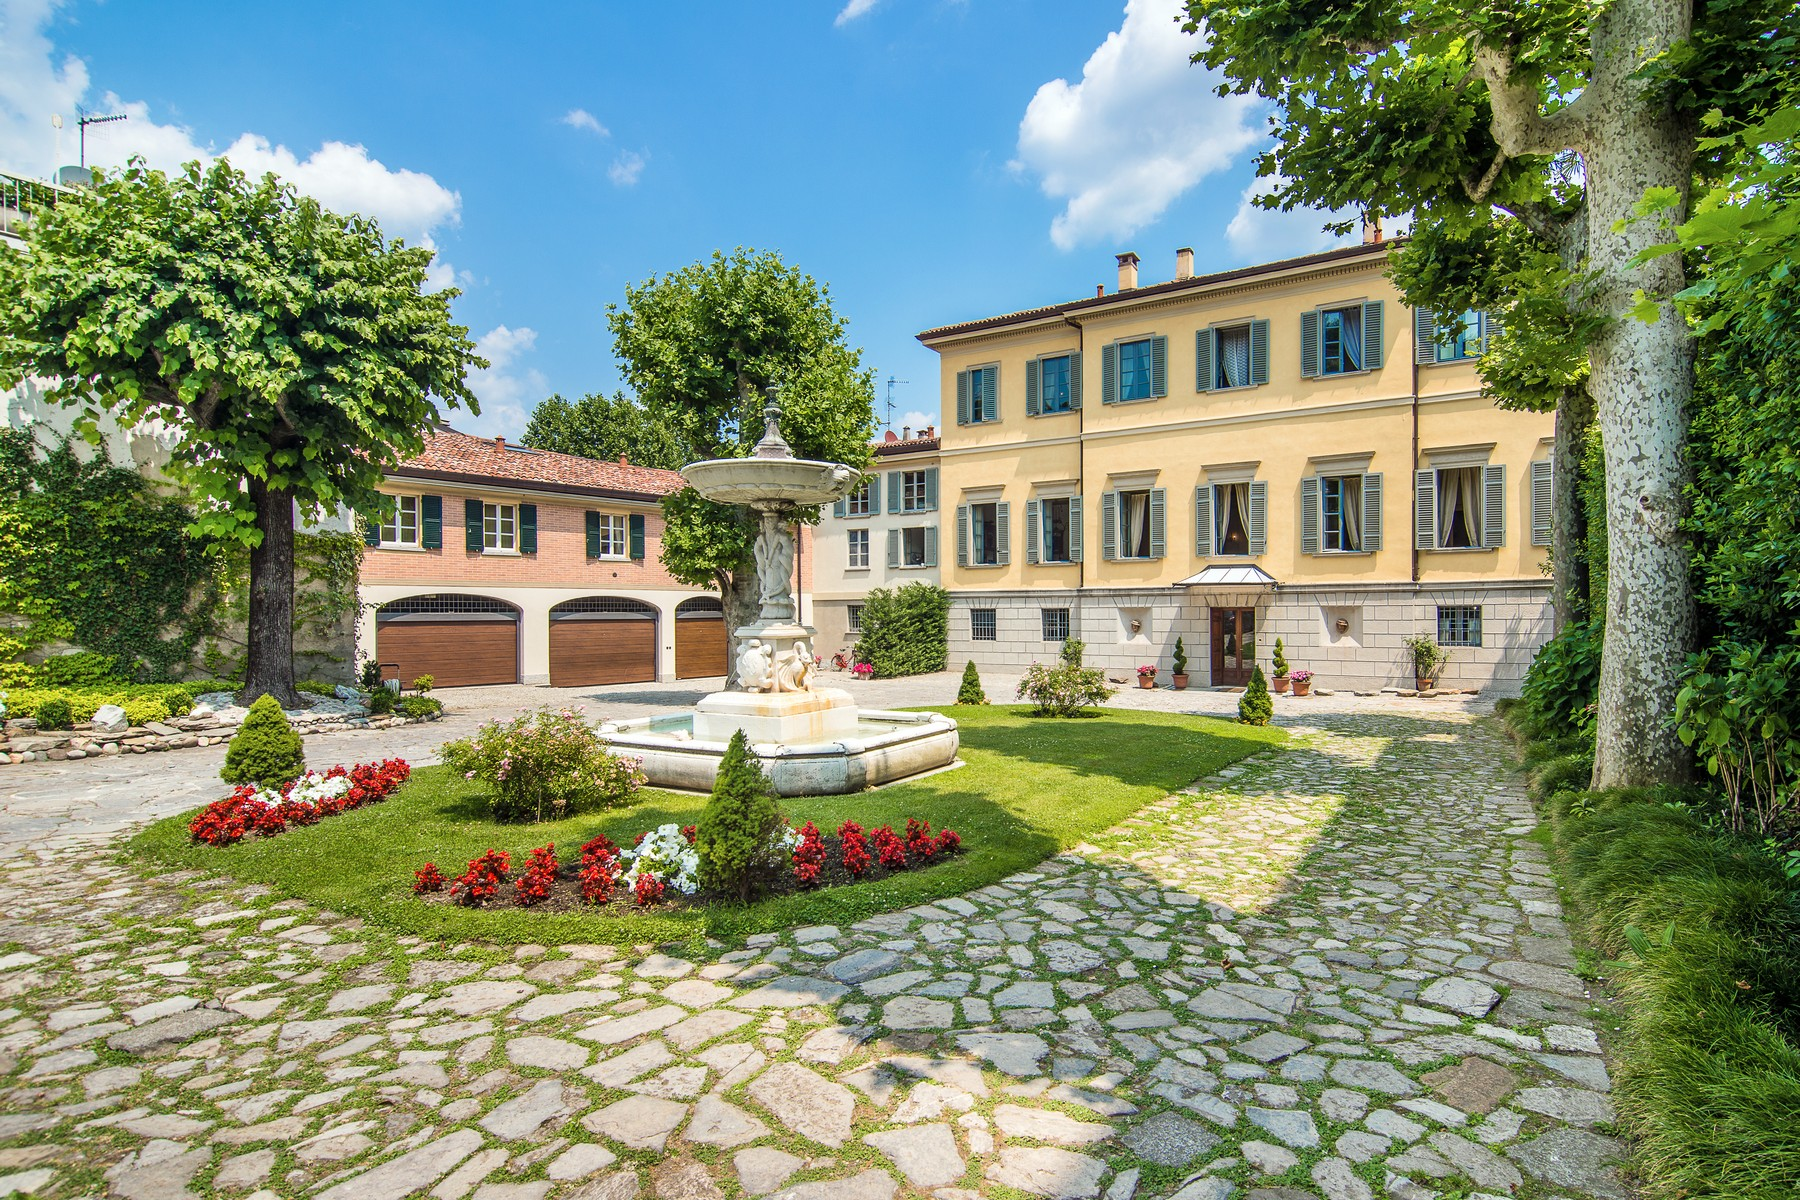 Multi-Family Home for Sale at Stunning property alongside Lake Como Passeggiata Villa Olmo Como, Como 22100 Italy